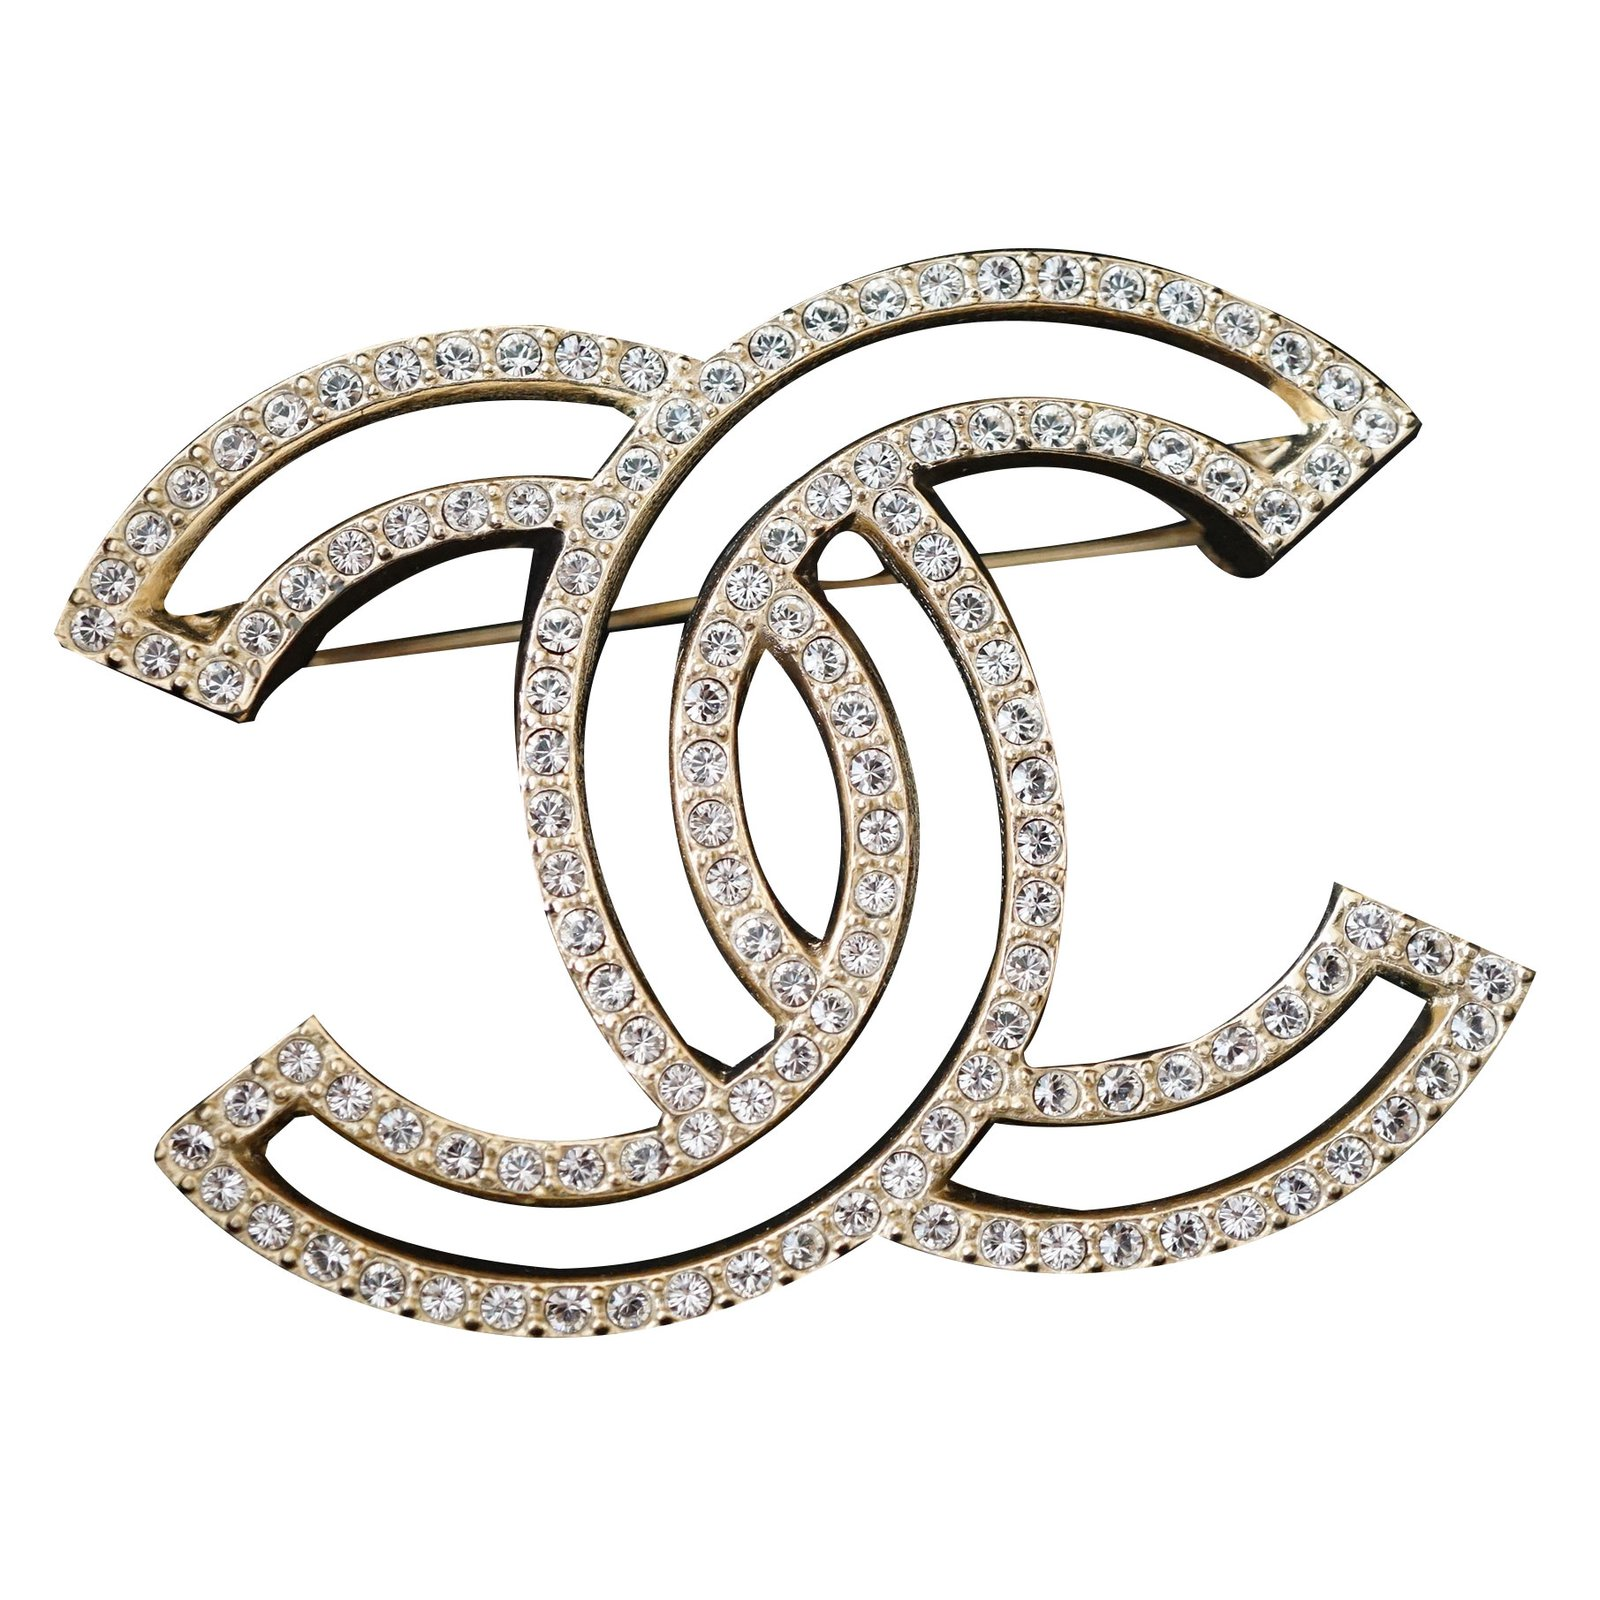 jewellery brooch cart en silver zircons silverzircons channel chanel add to